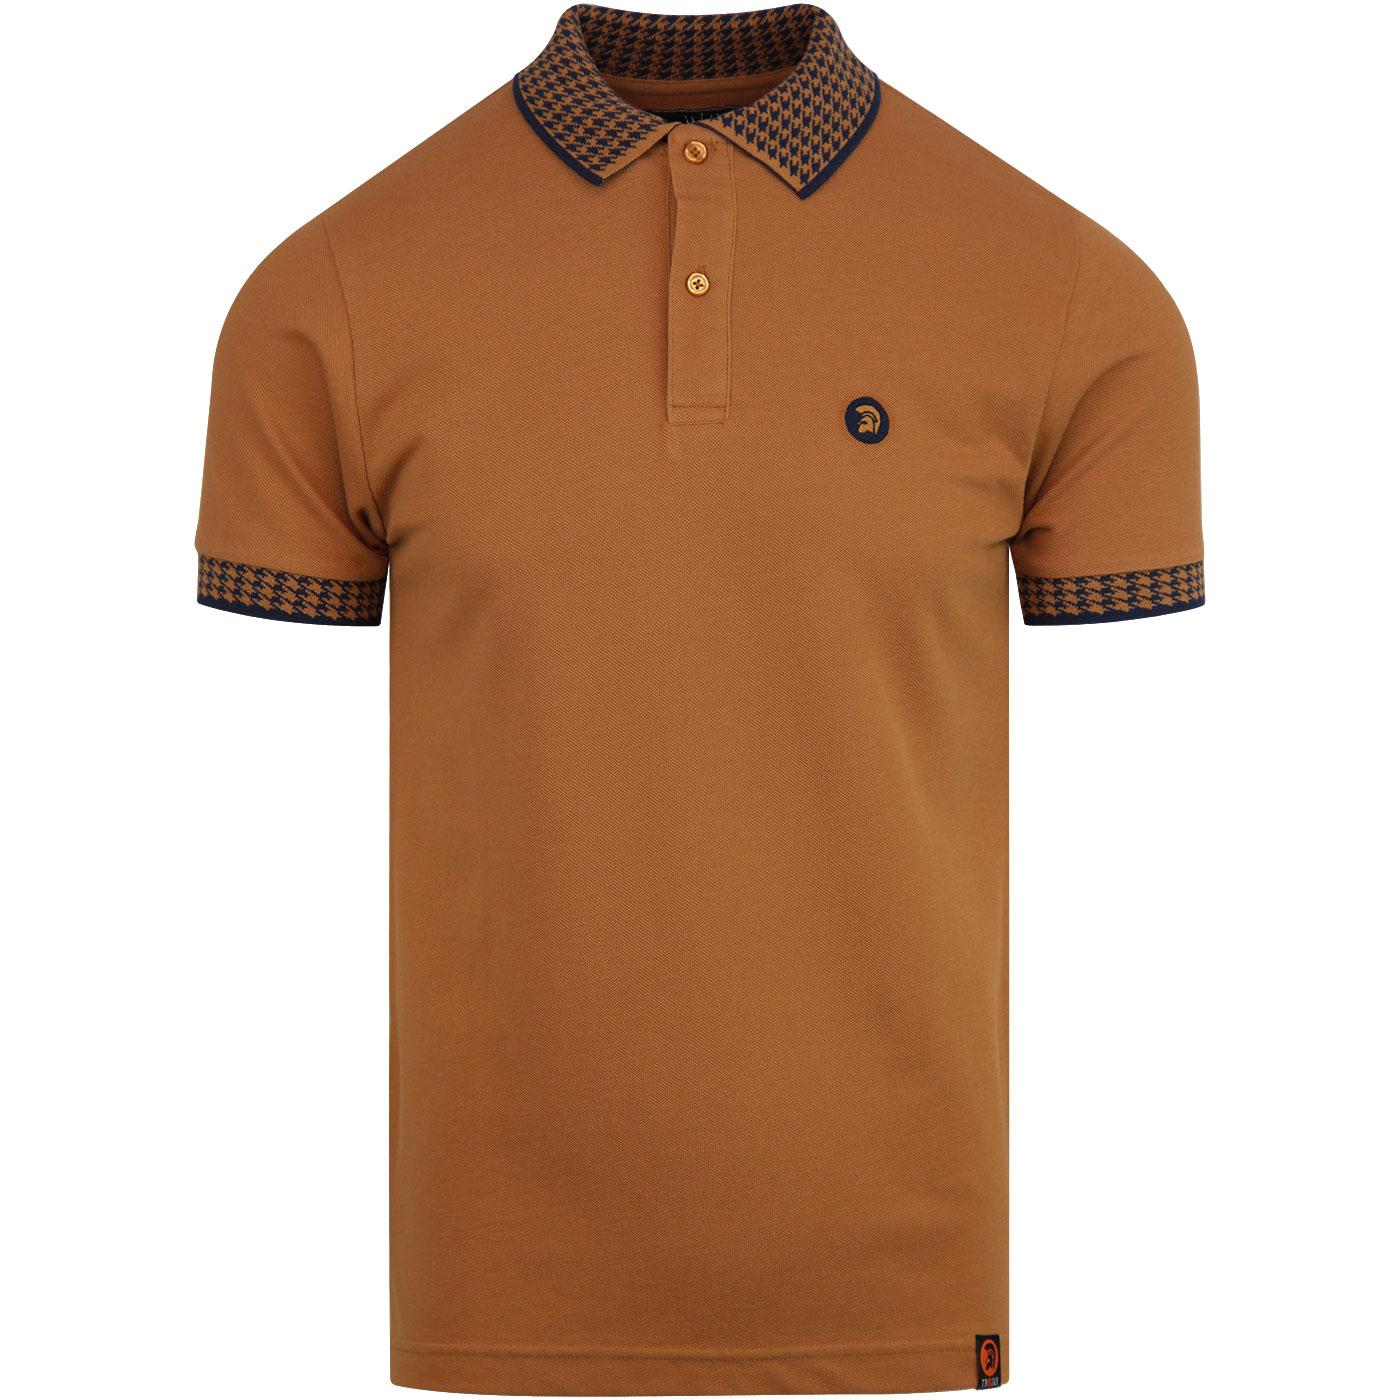 TROJAN RECORDS Houndstooth Trim Mod Polo Shirt GT